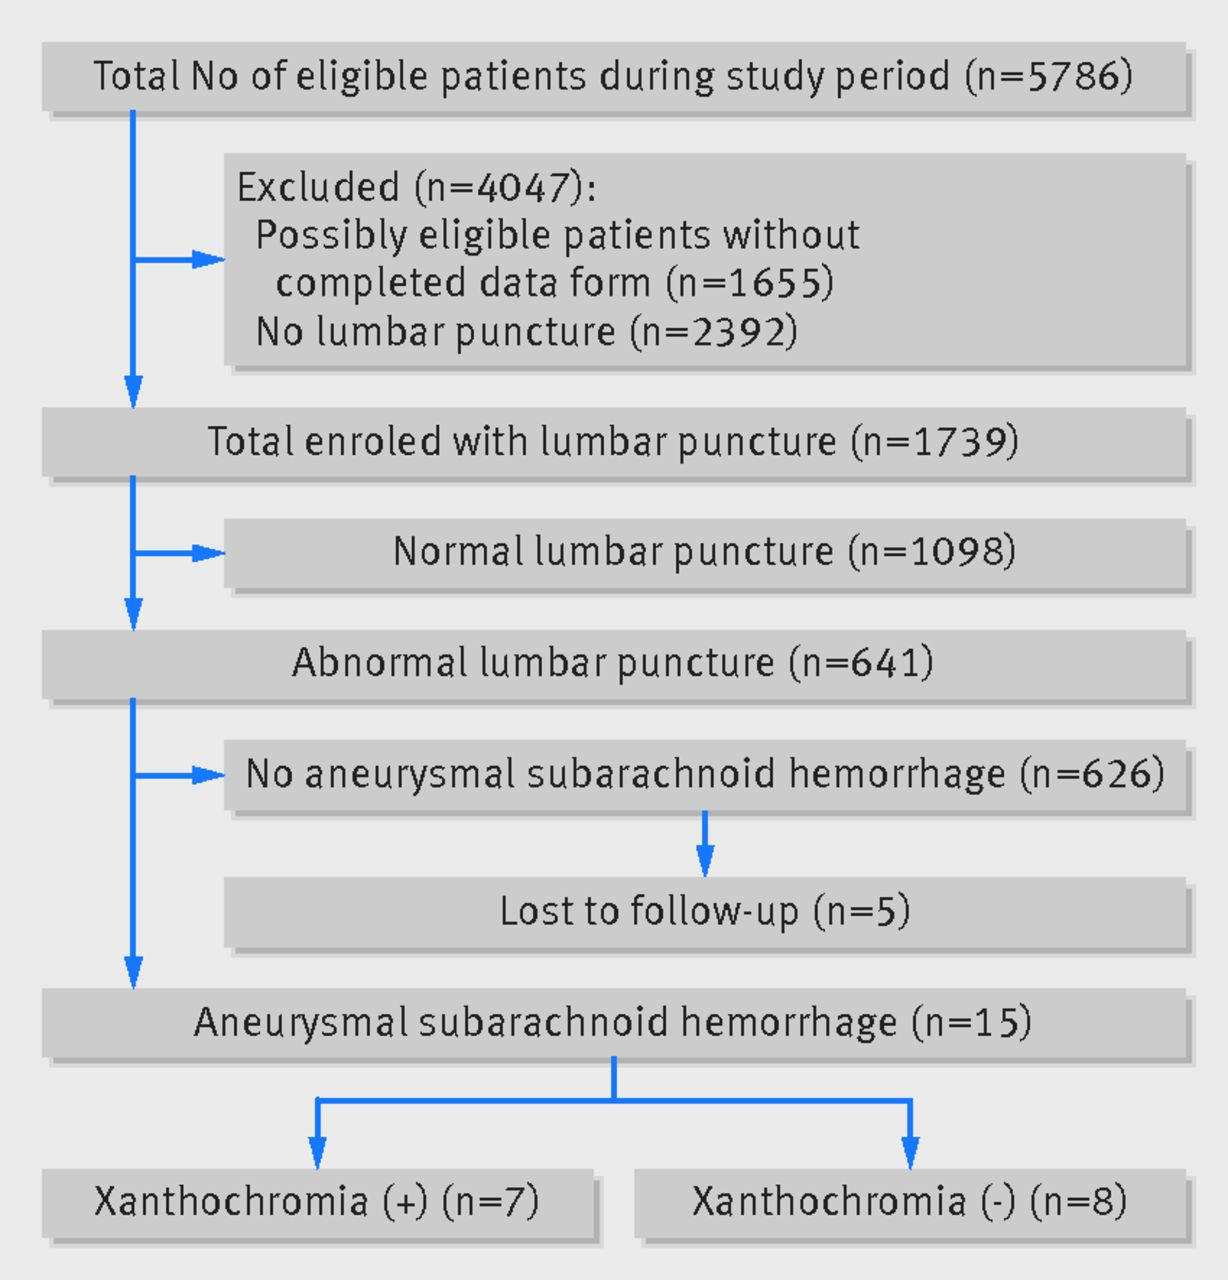 differentiation between traumatic tap and aneurysmal subarachnoid